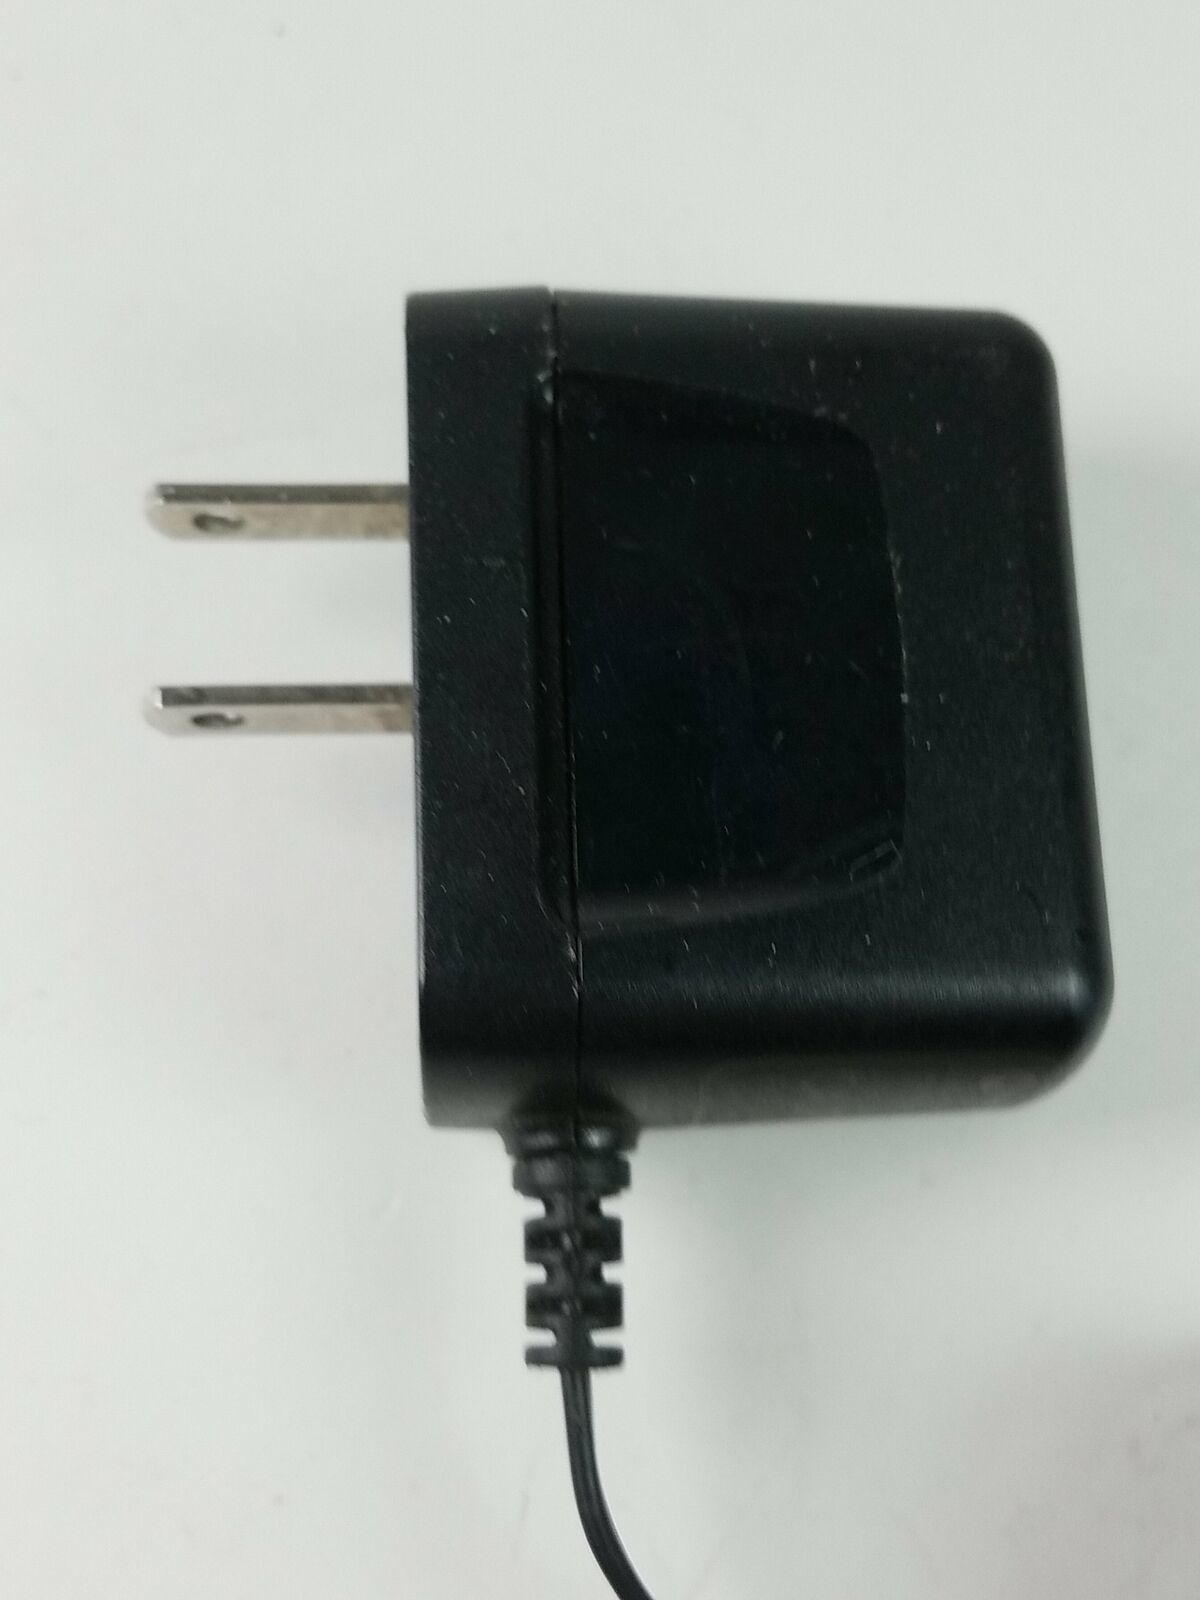 Motorola ITE Power Supply Charger 08025-10-08387738-A-B image 2